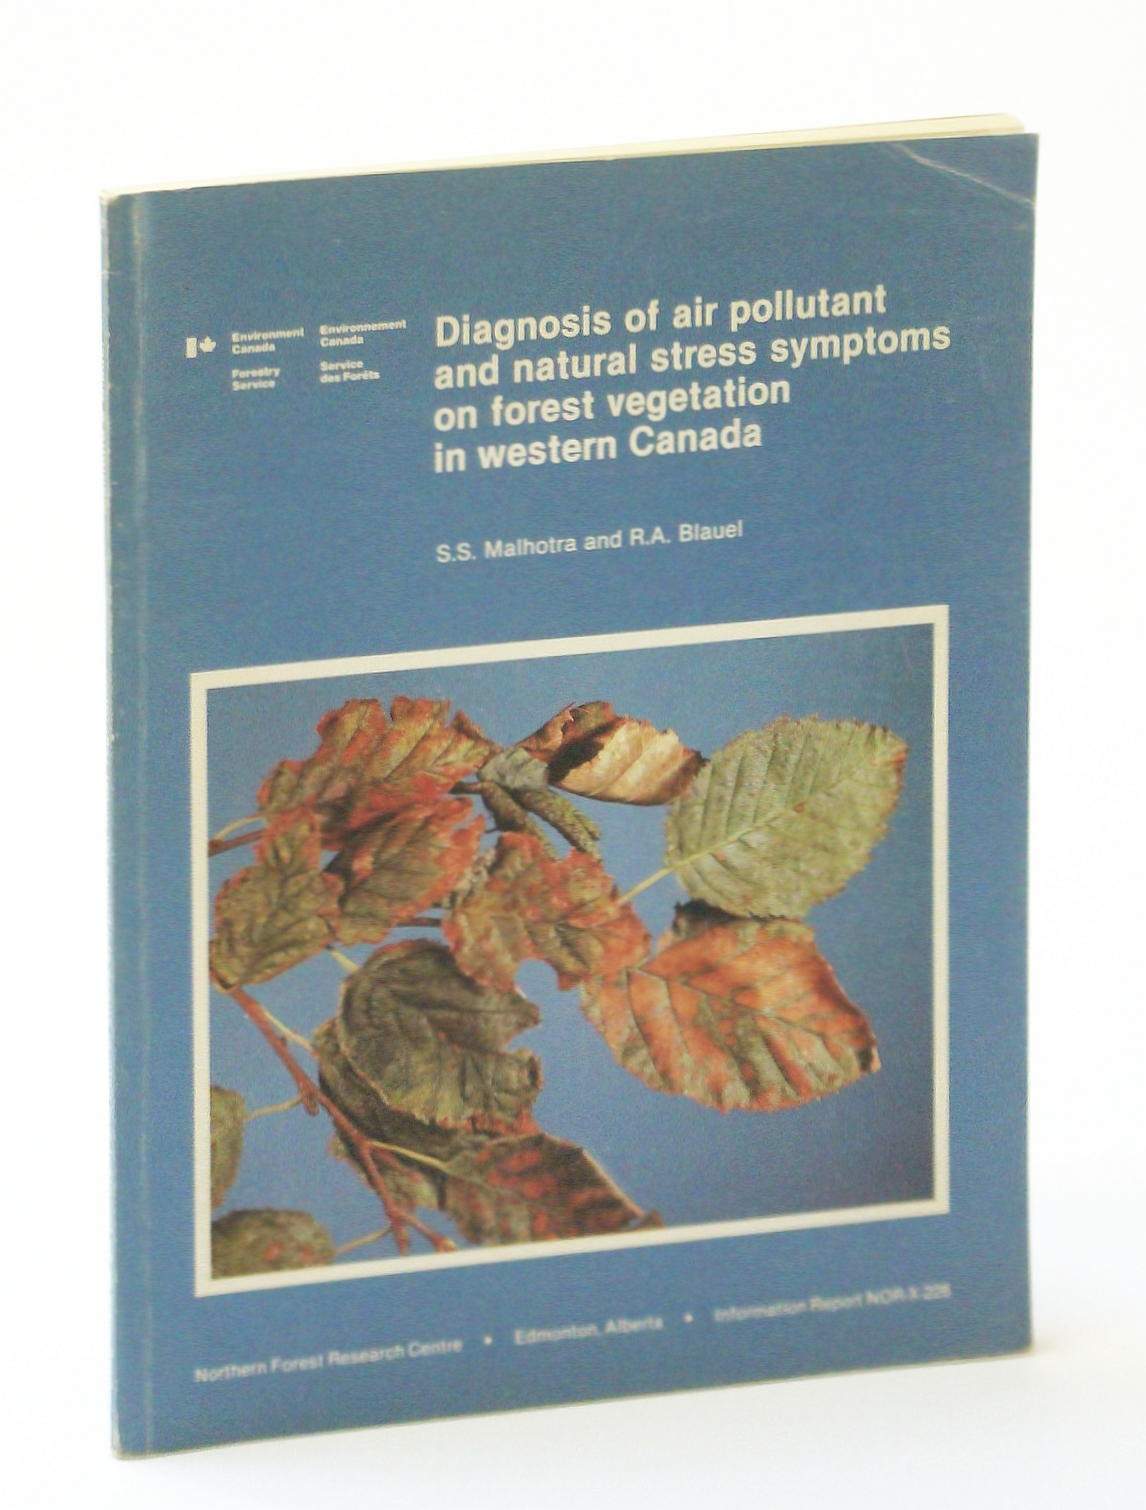 Image for Diagnosis of air pollutant and natural stress symptoms on forest vegetation in western Canada (Information report / Northern Forest Research Centre)